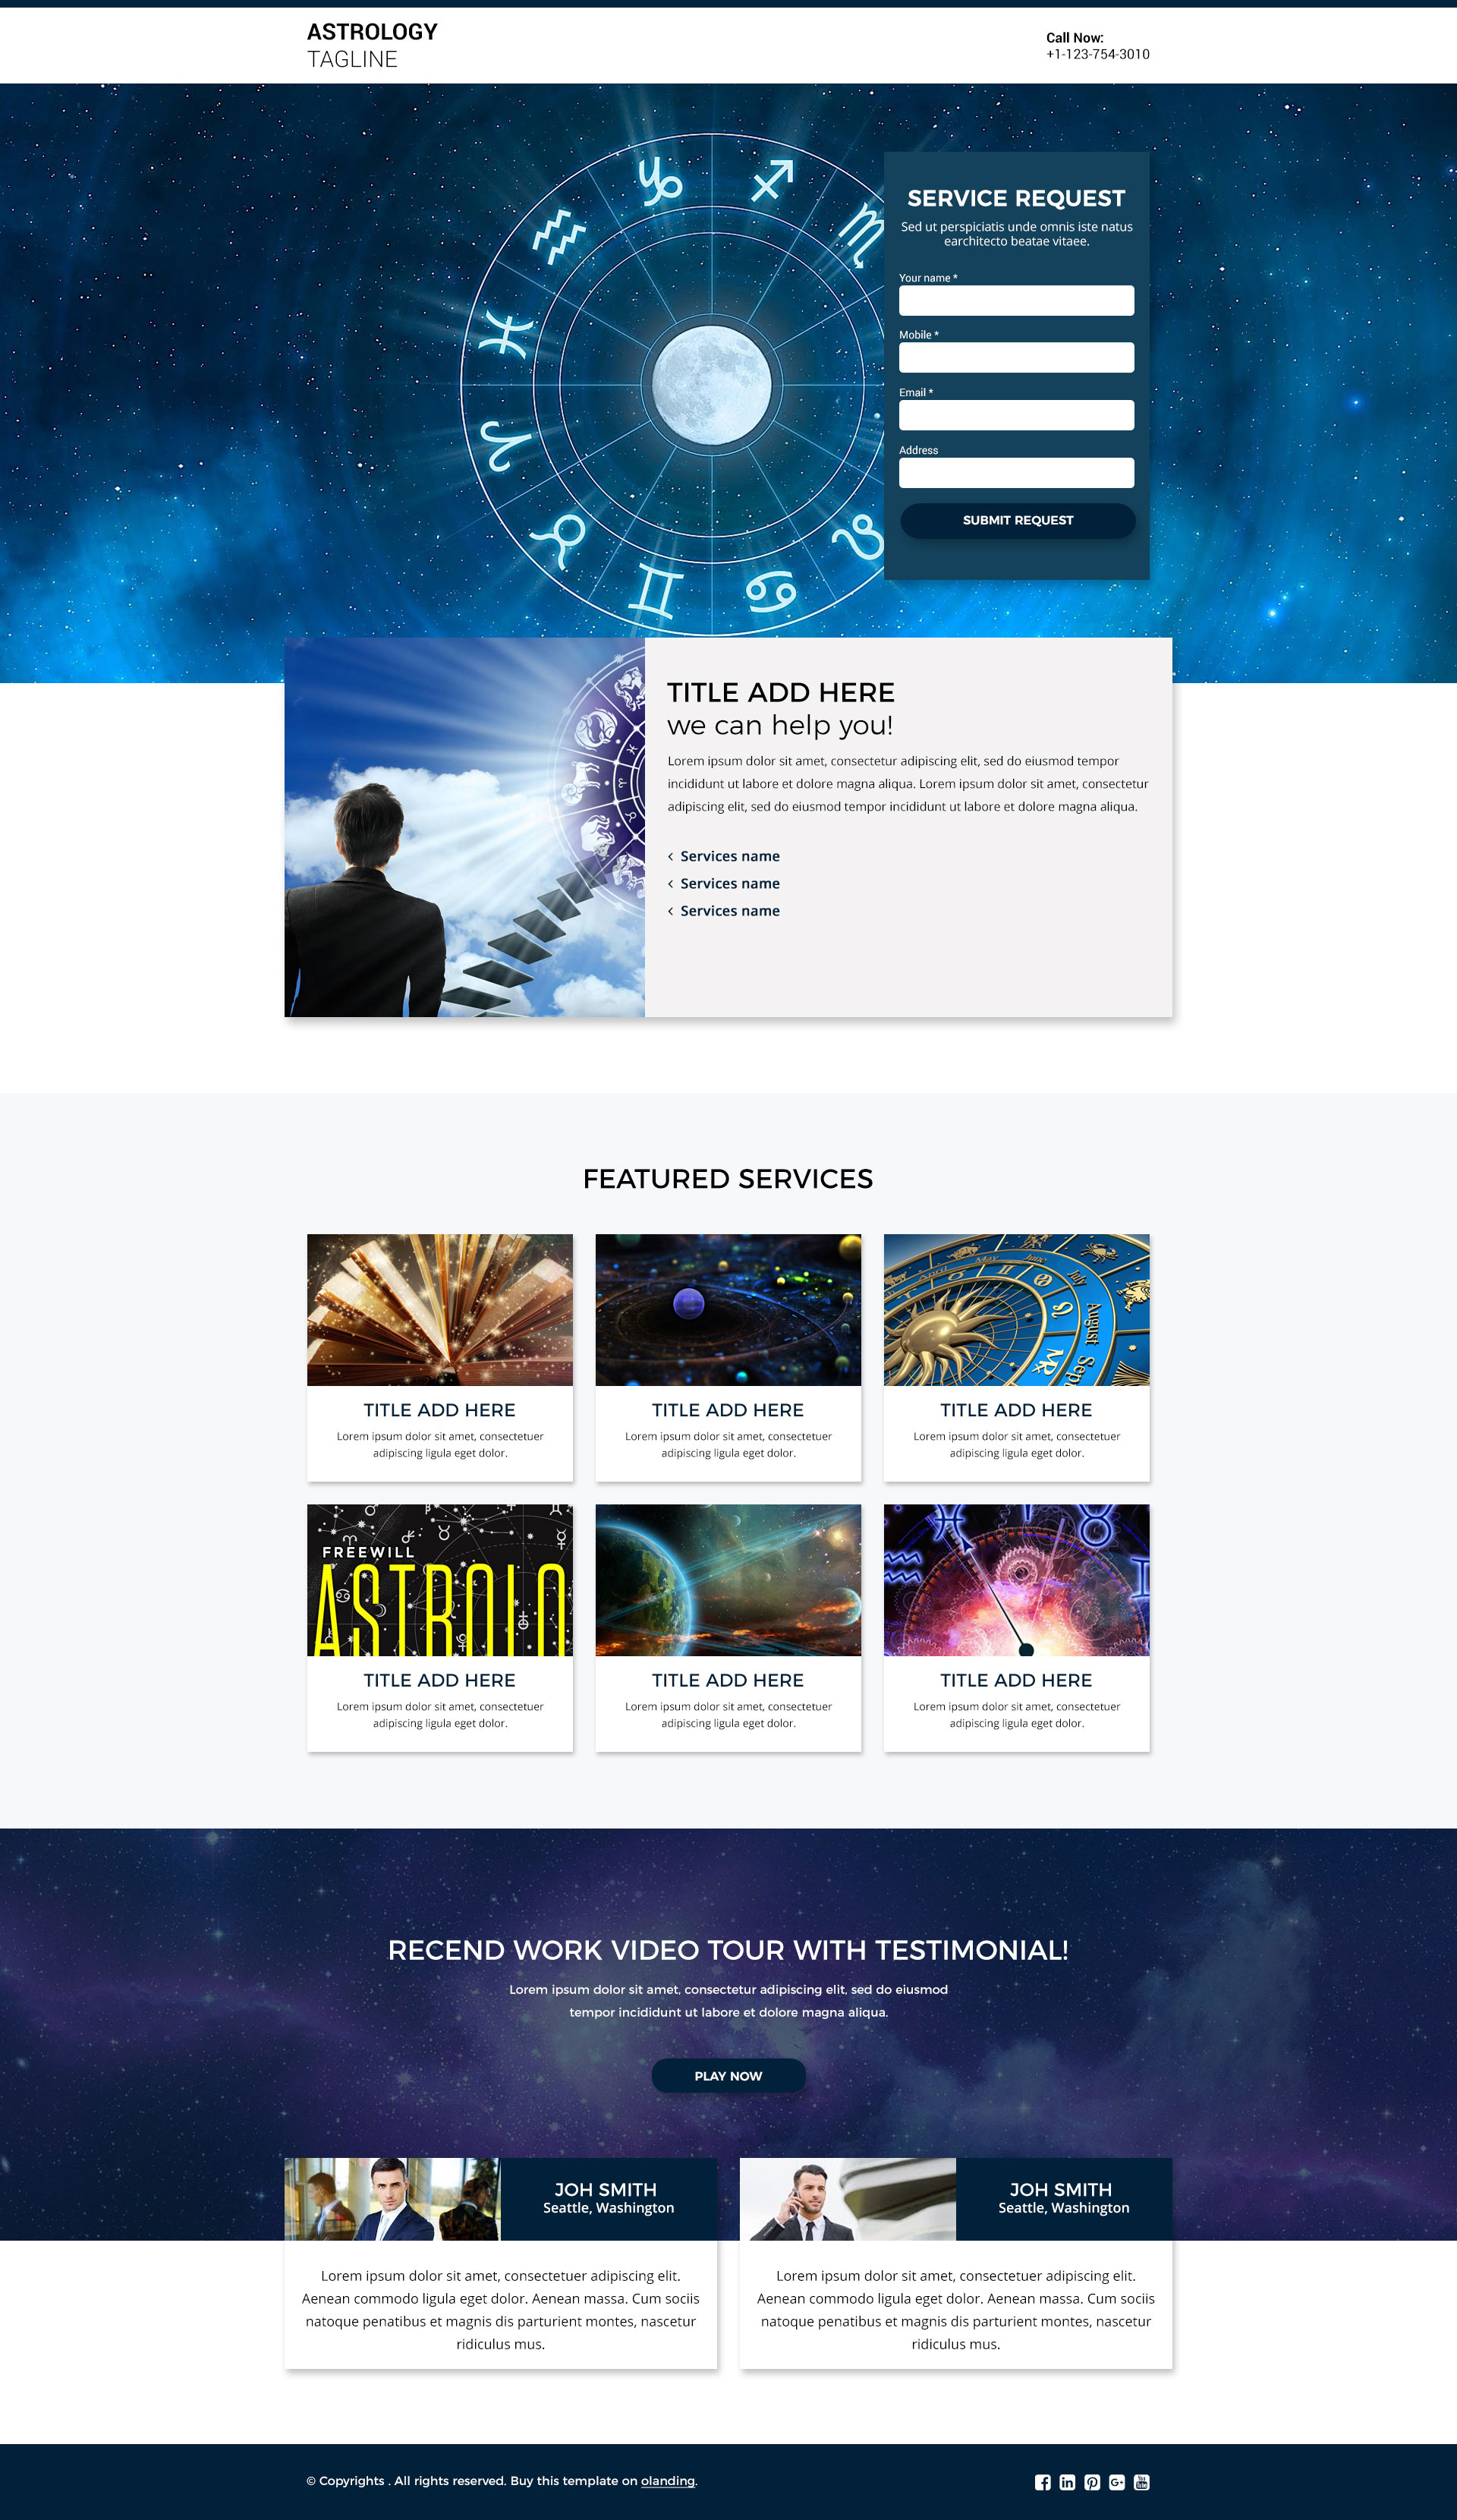 astrology landing page template